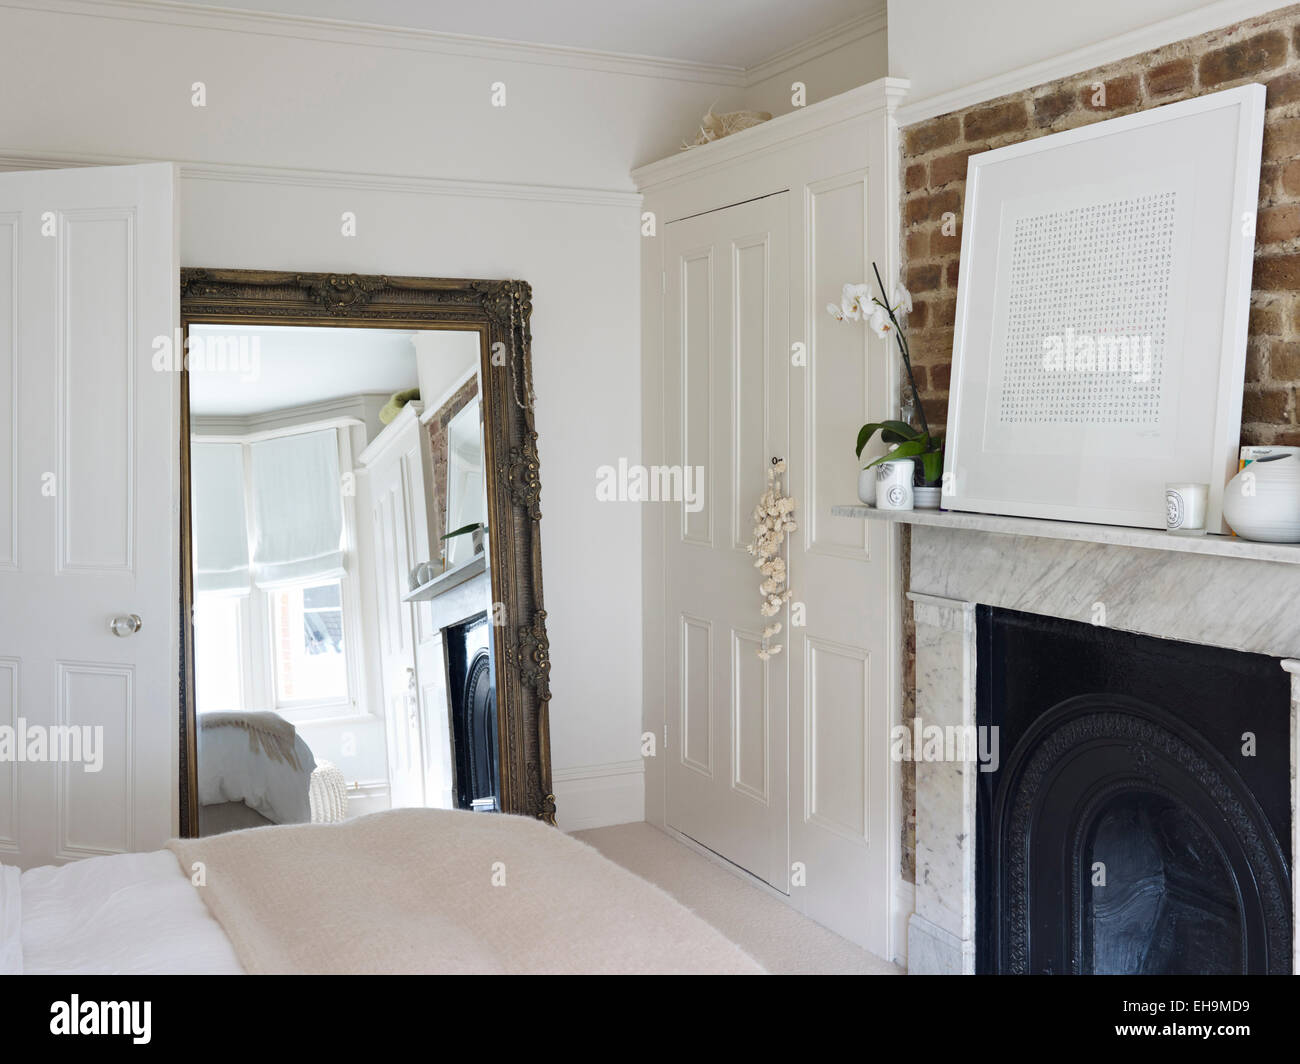 Mirror For Bedroom Wall Wall Mirror For Bedroom Wall Mirror Bedroom Full Length Stock